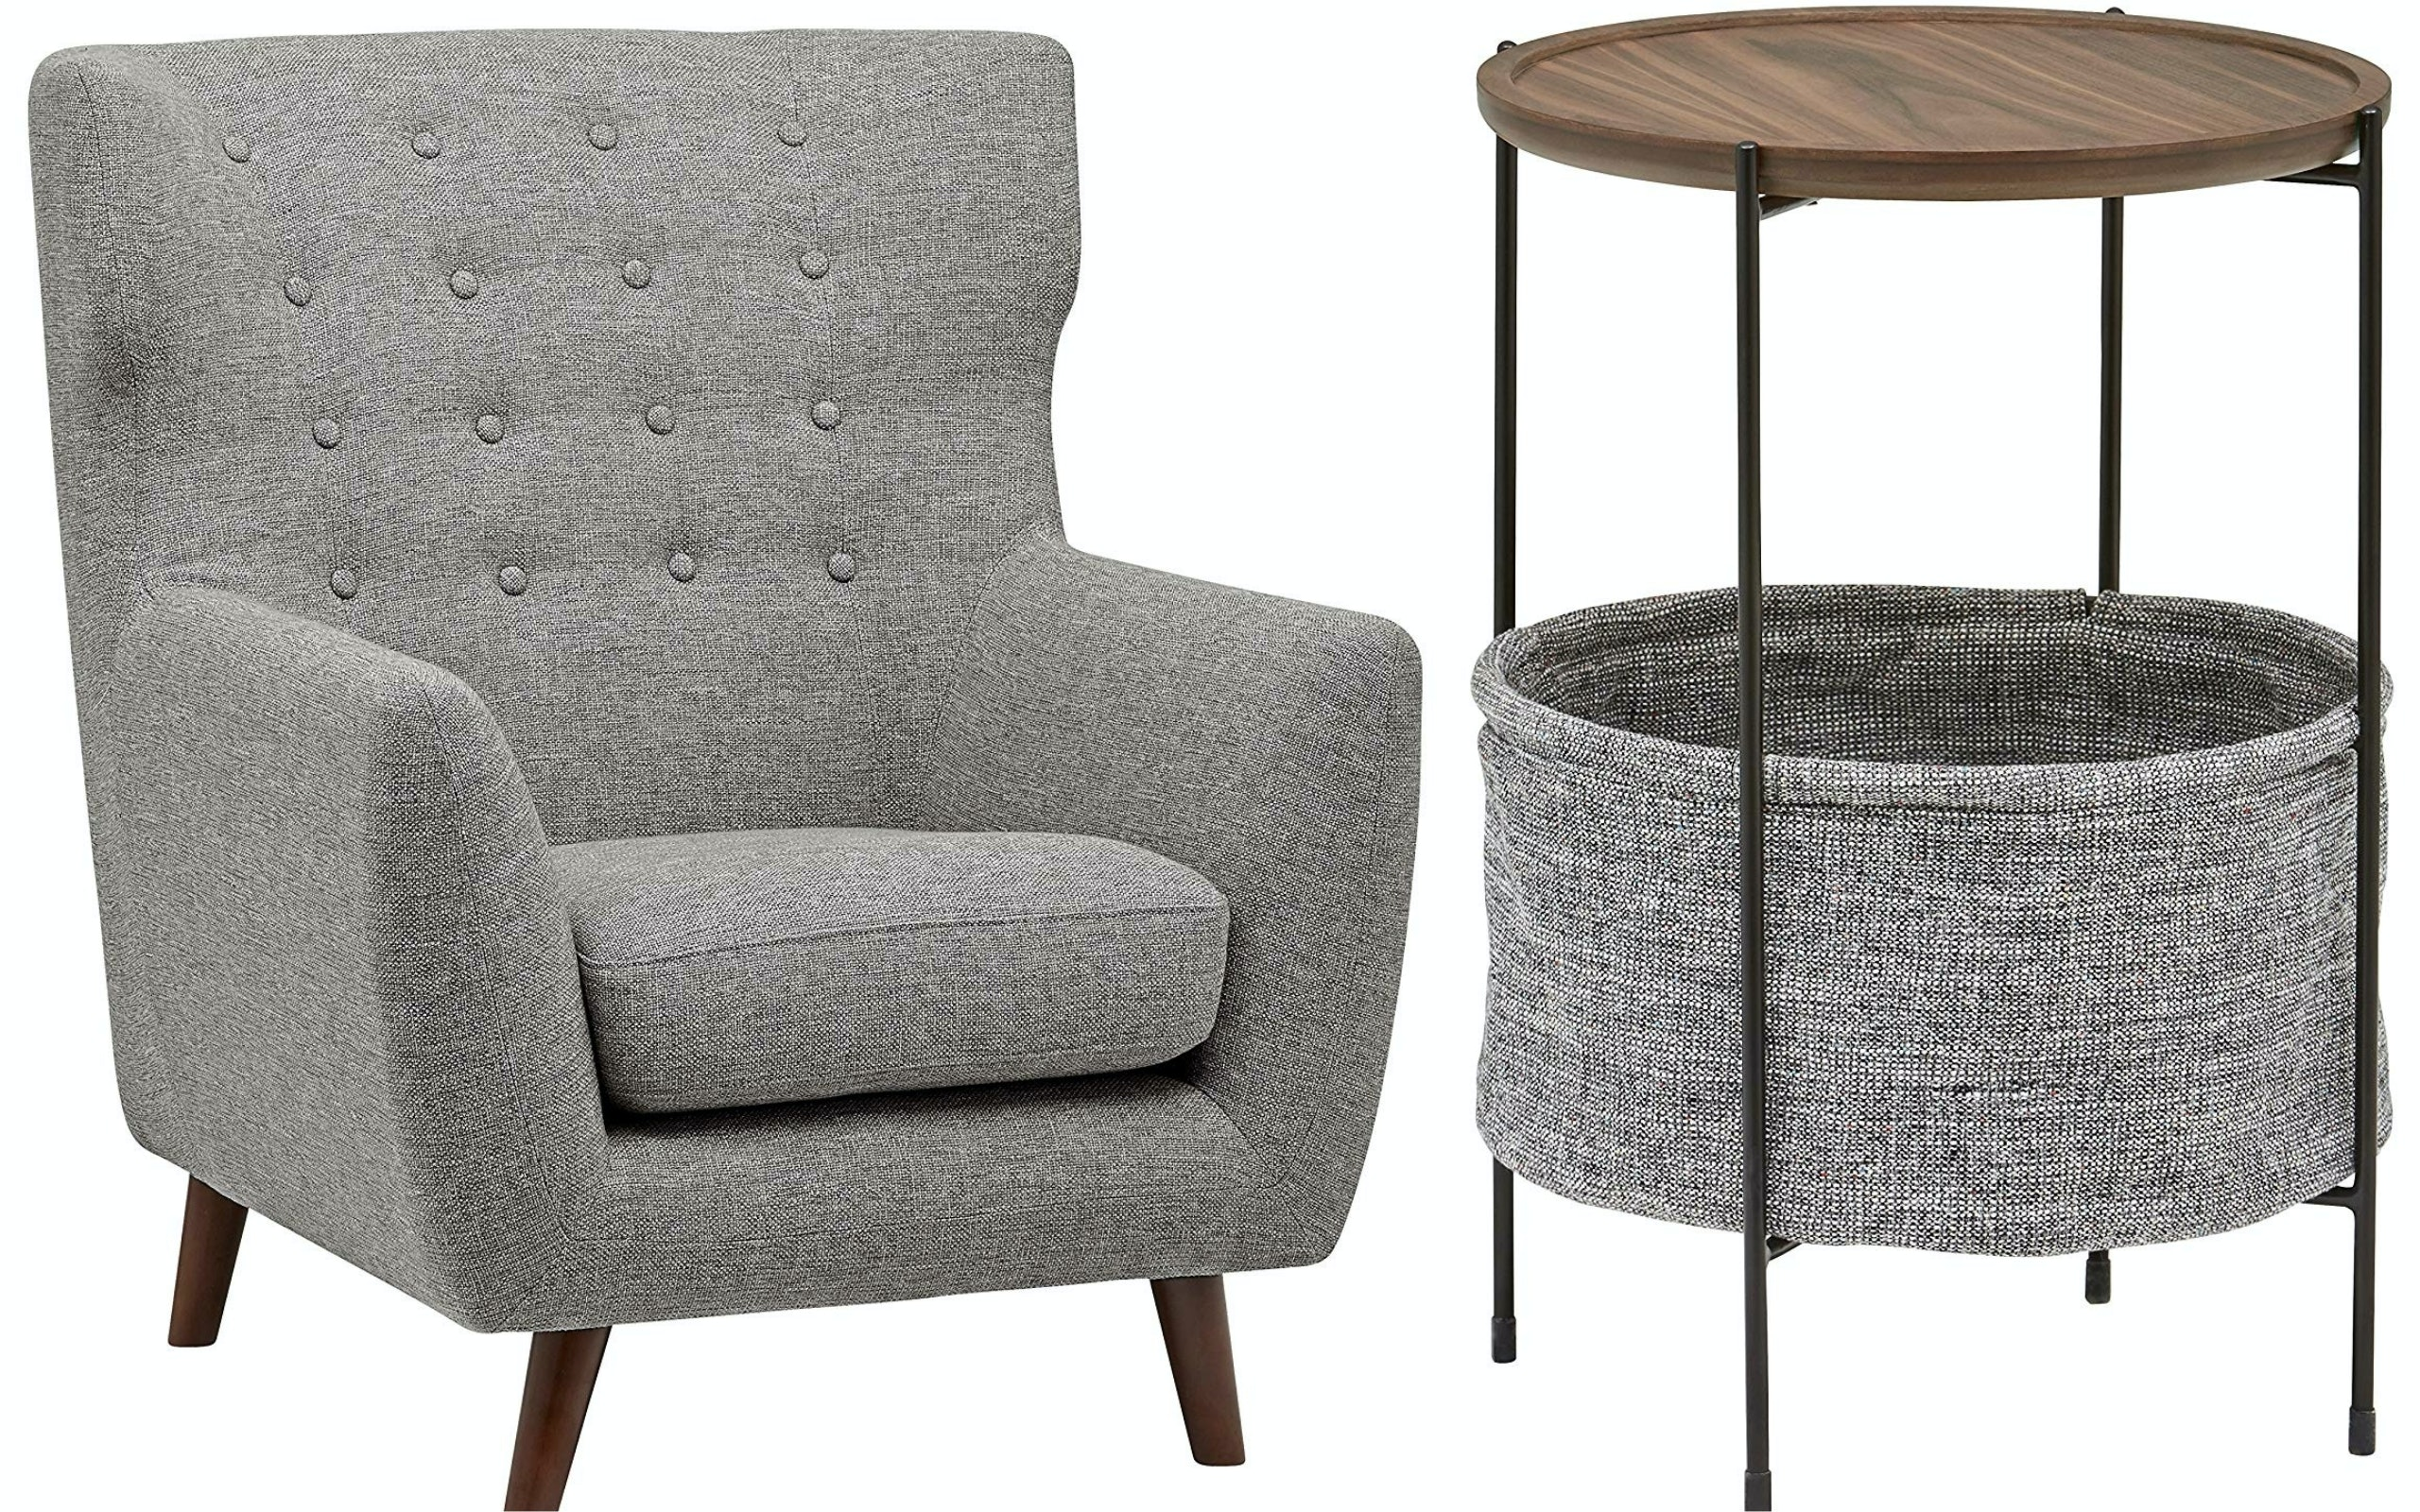 Amazon Sofa Deals 12 Amazon Prime Day Furniture Deals That Are Perfect For Your